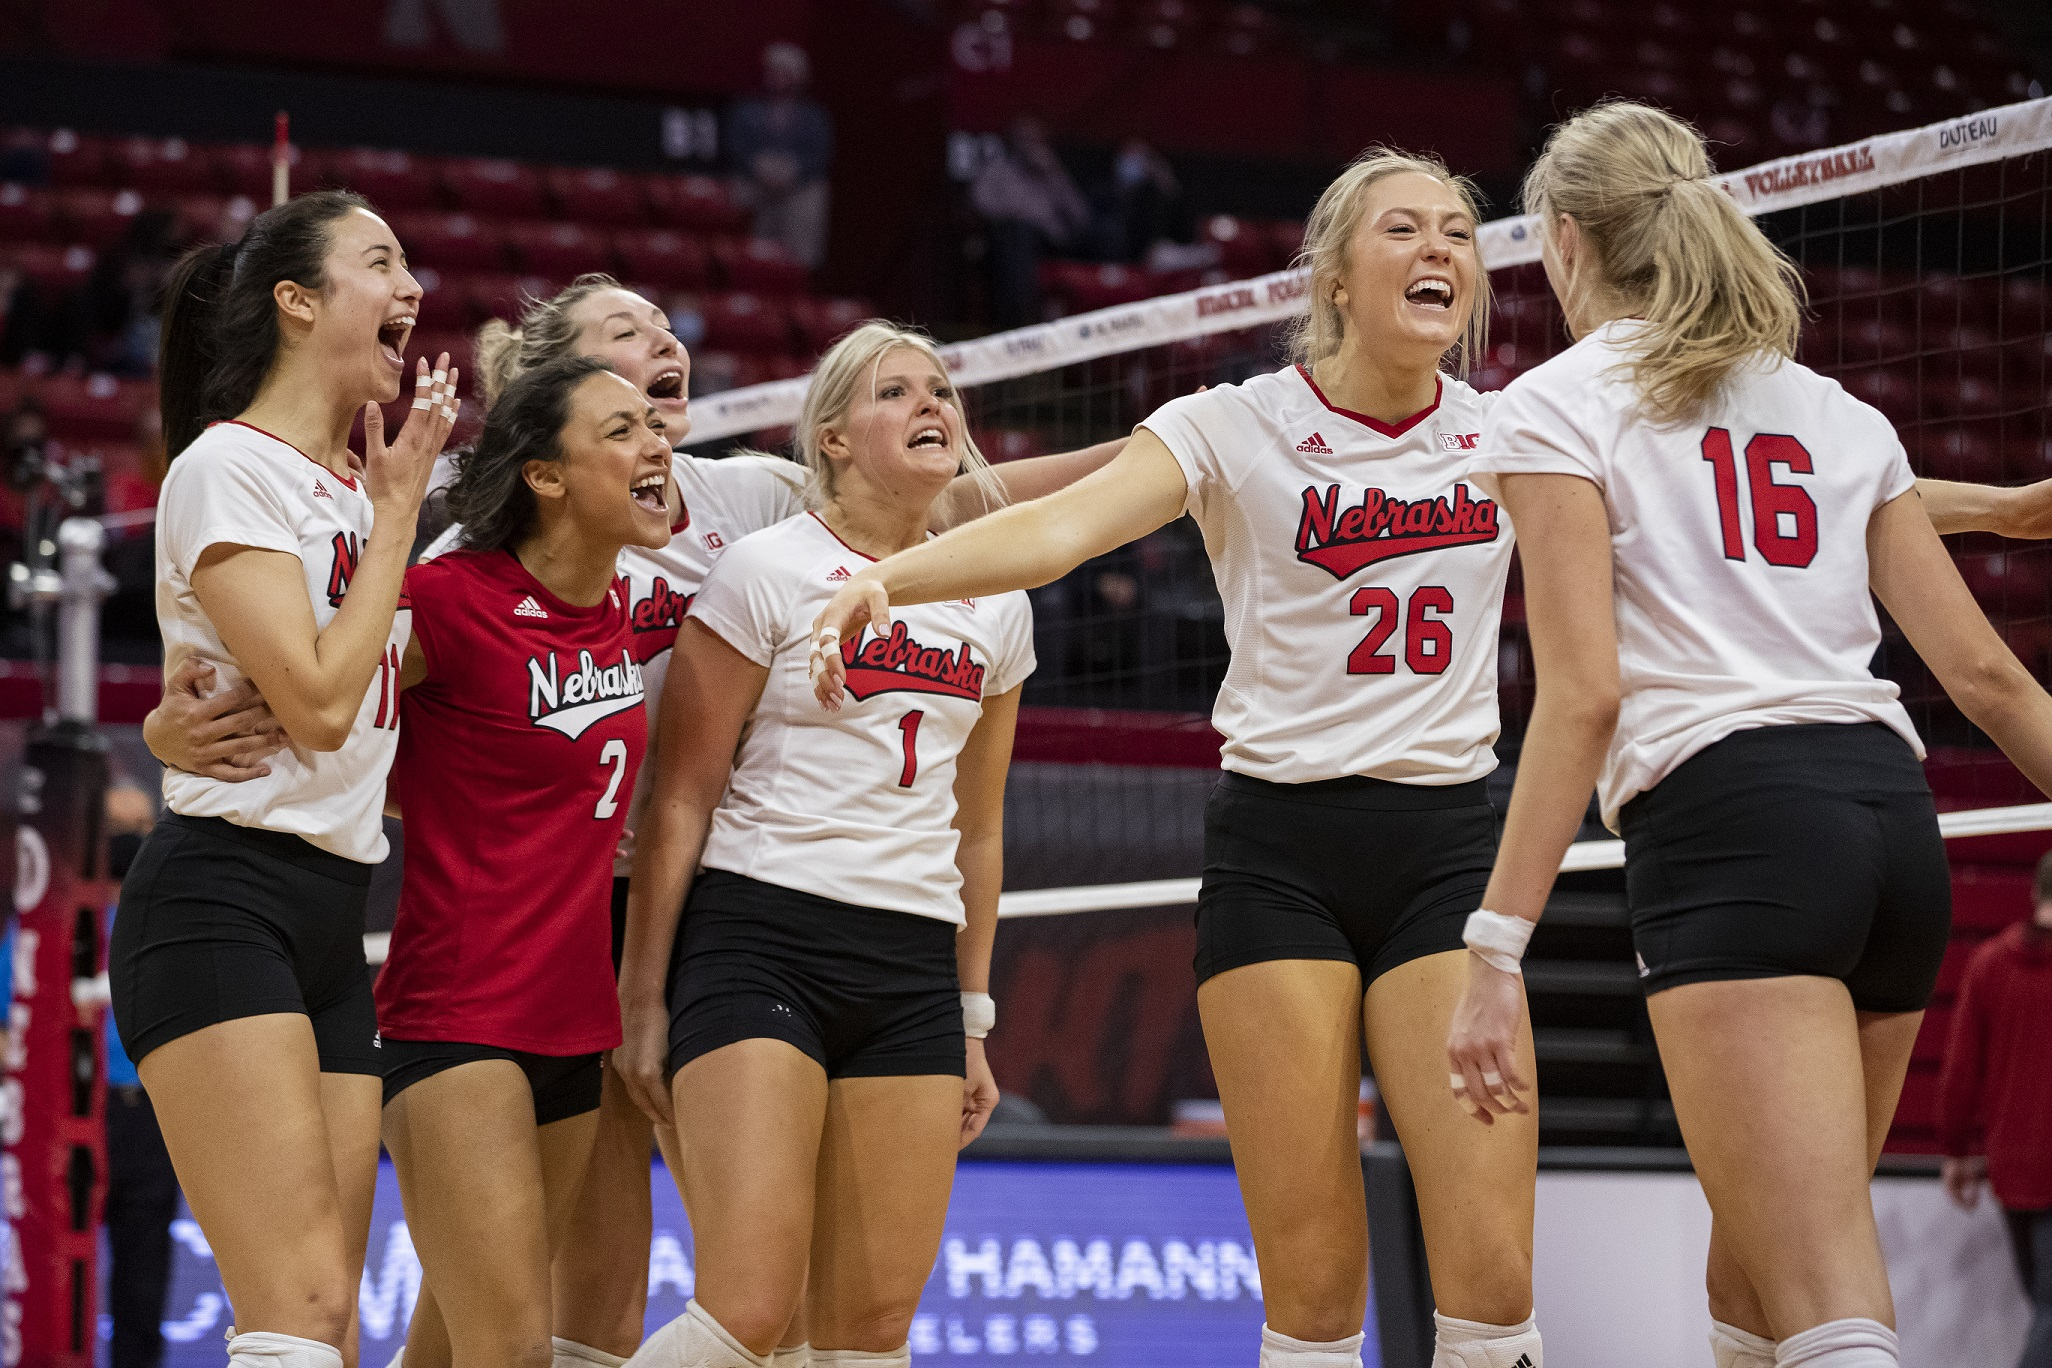 Huskers seeded No. 5 overall for NCAA Tournament